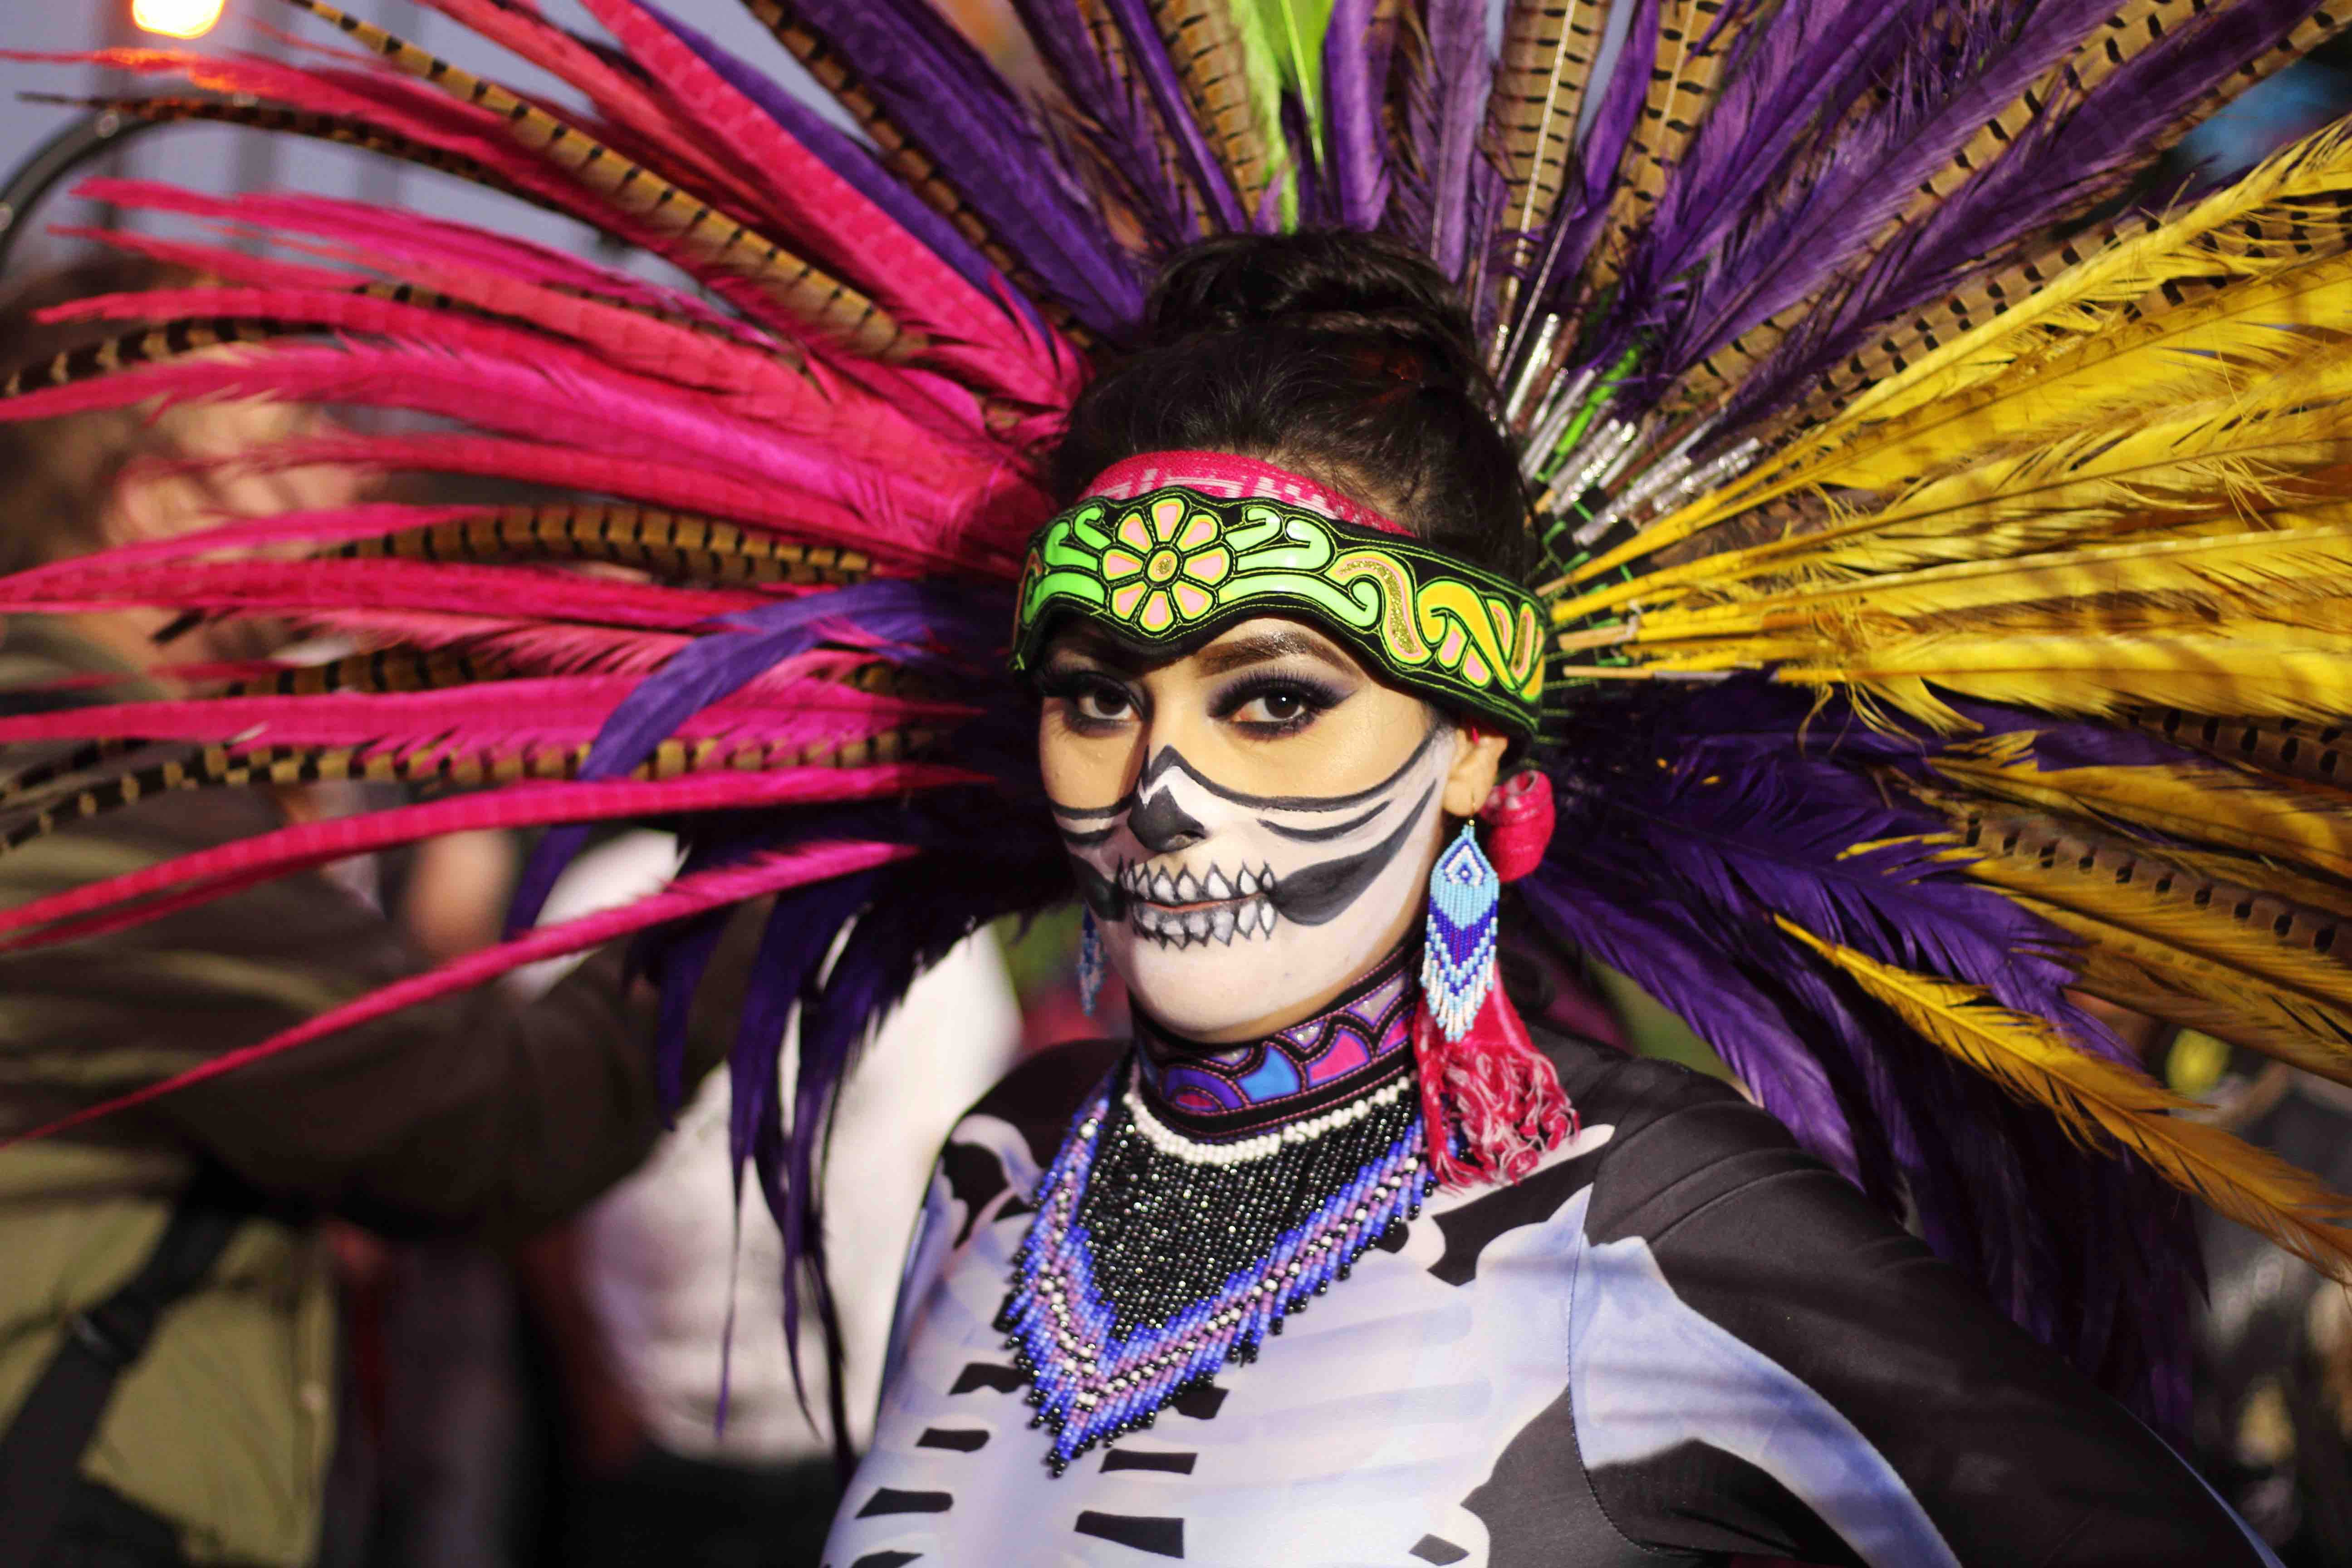 An exploration of the transformation of Día de los Muertos from its pre-colonial beginnings in Mexico to a worldwide holiday.